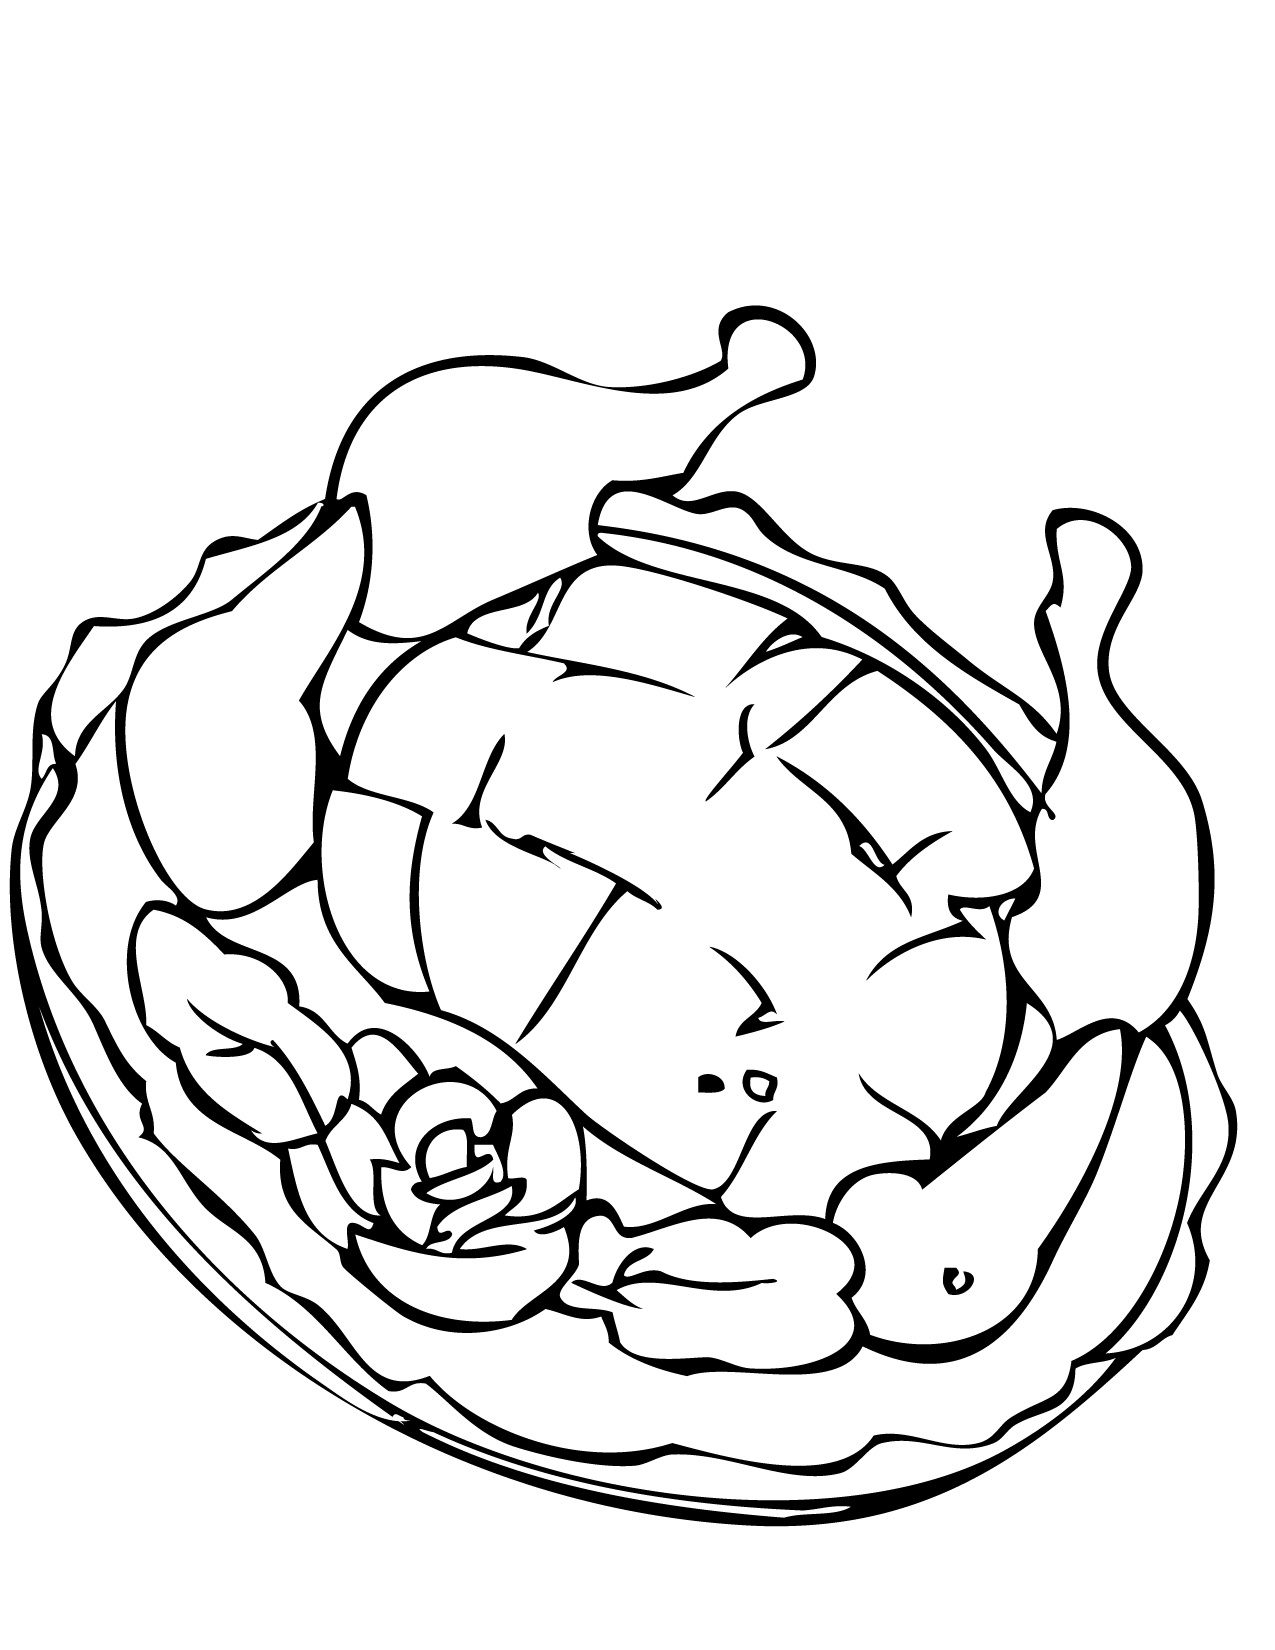 food coloring book healthy food coloring pages clipart panda free clipart coloring book food